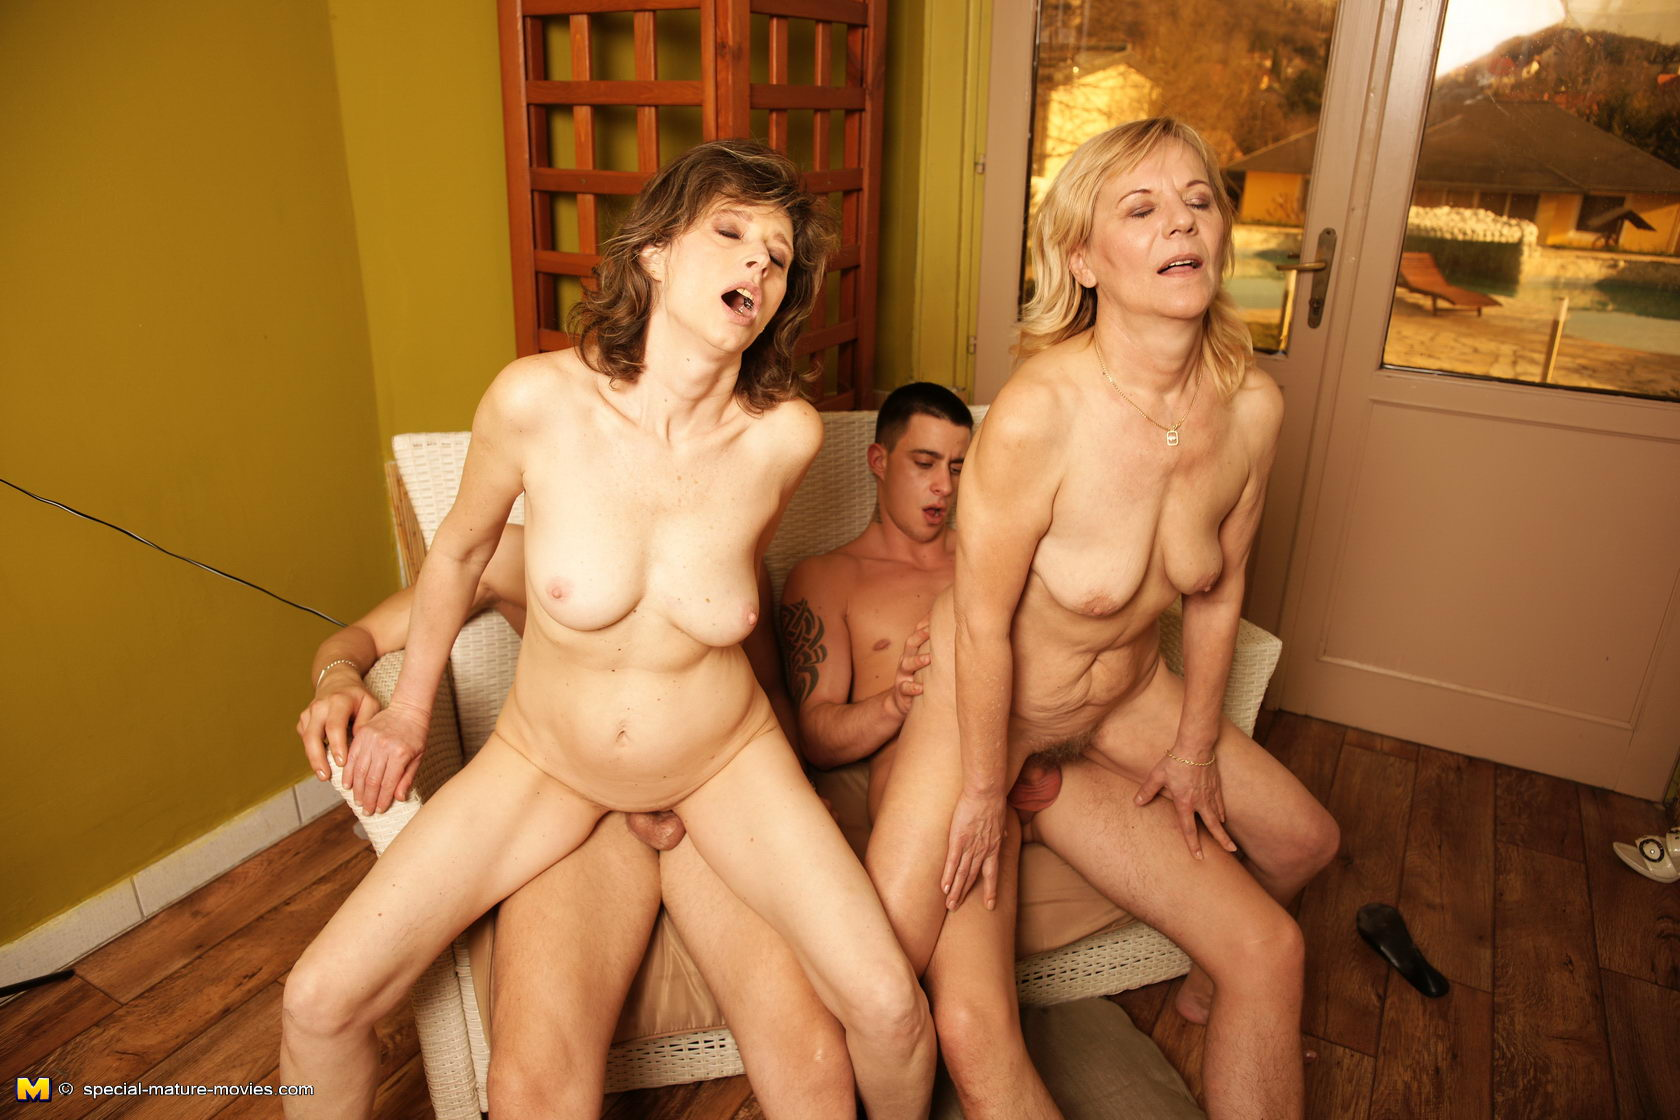 Amateur gb orgy - 1 part 10